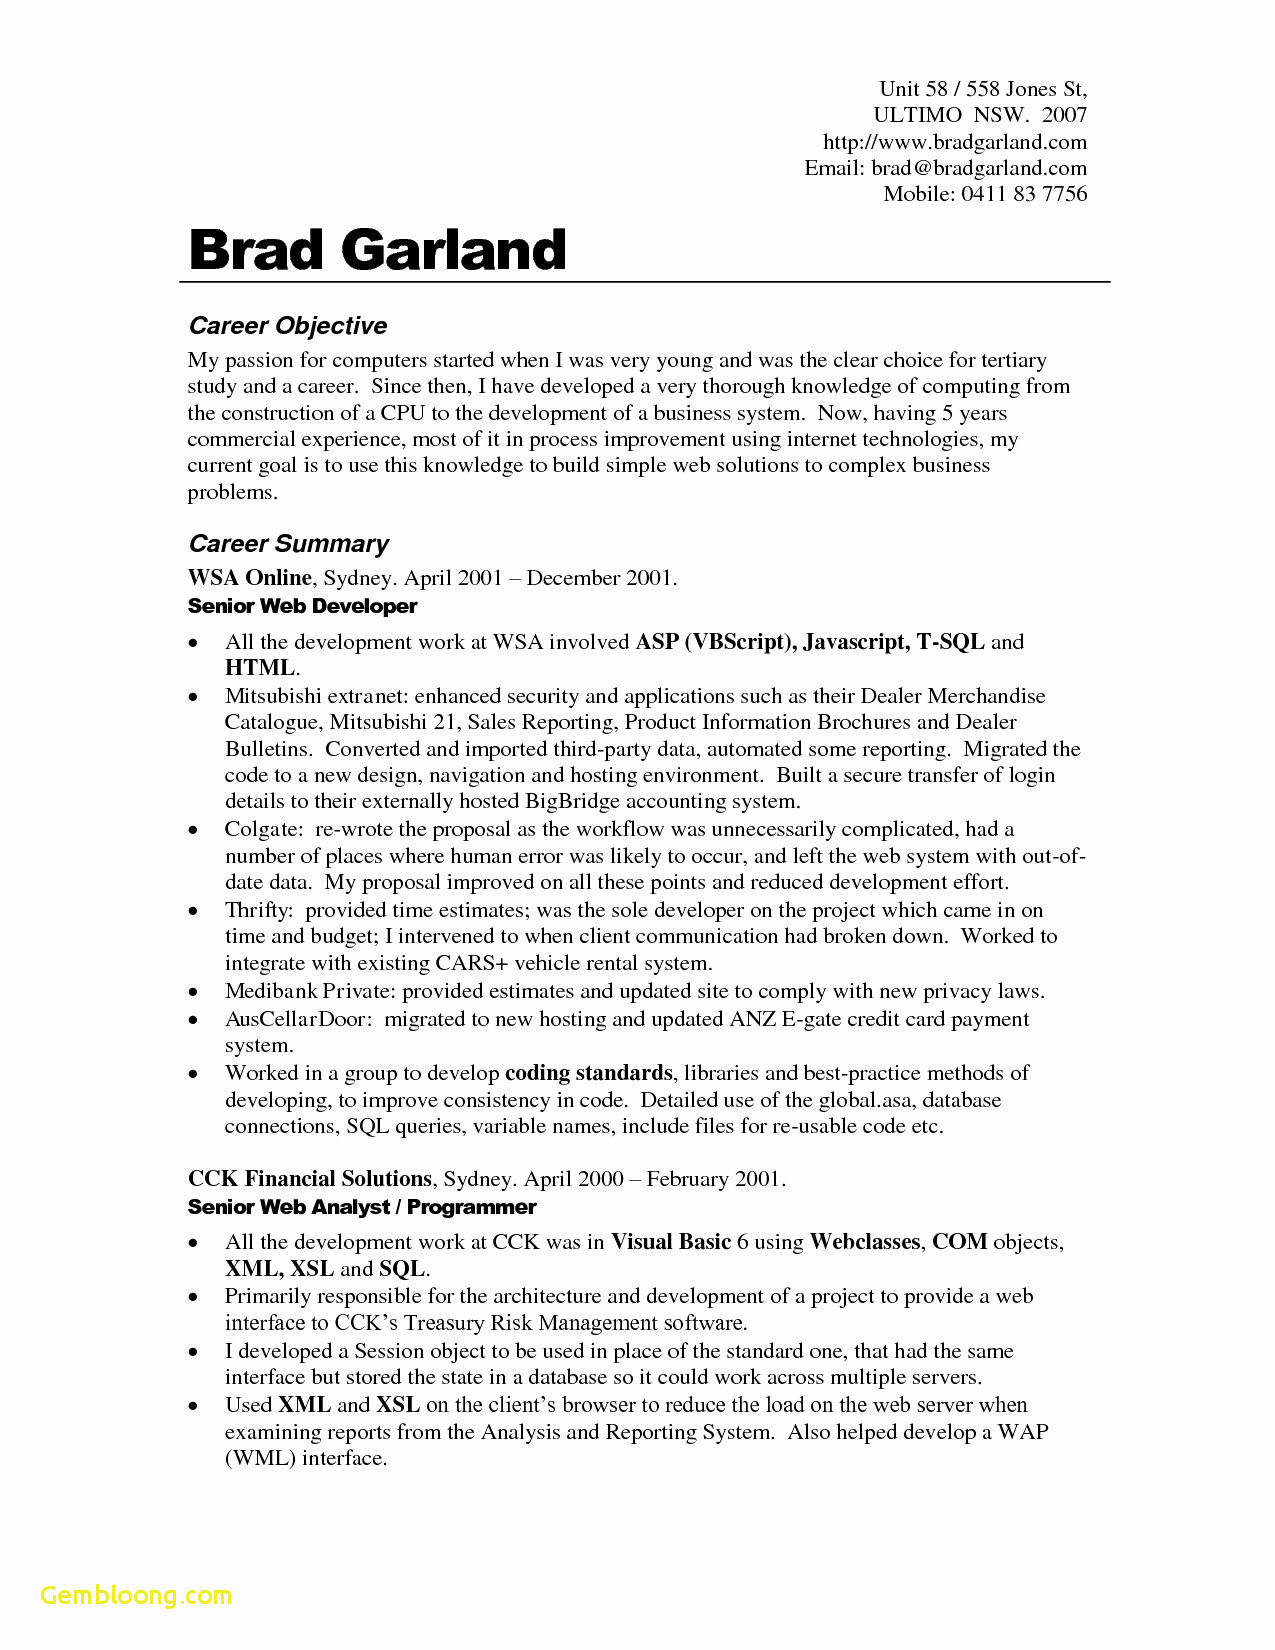 Modern Resume and Cover Letter Template - Free Modern Resume Template Download Od Consultant Cover Letter